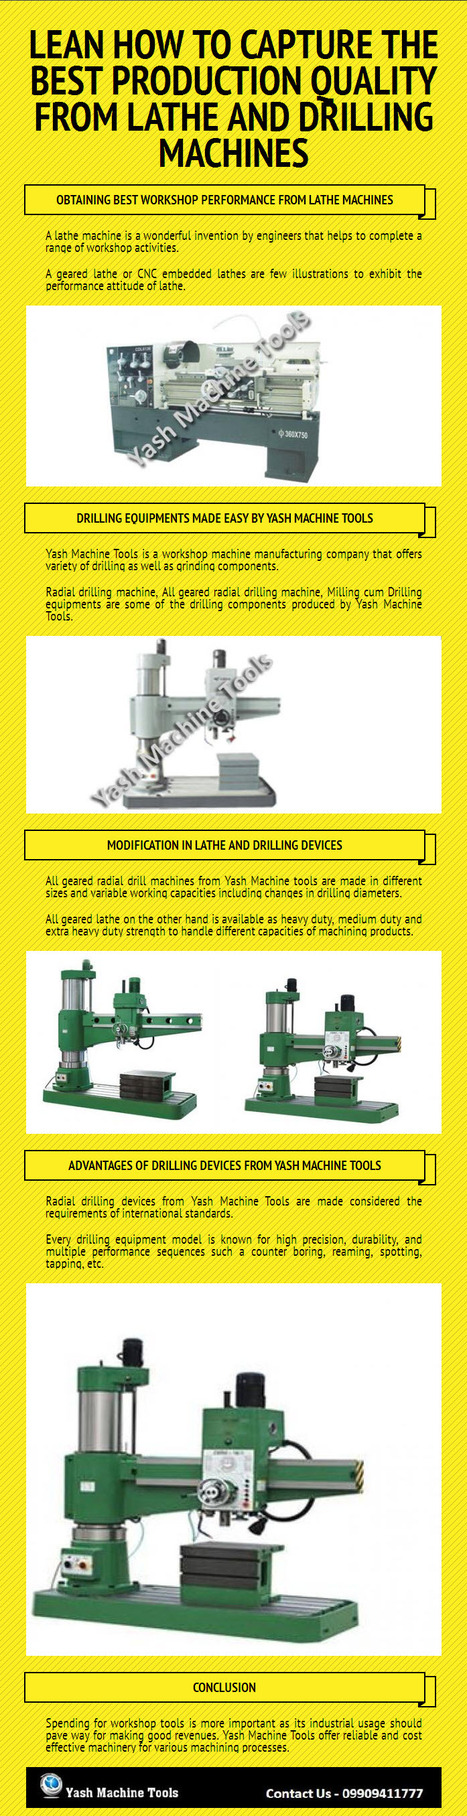 Lean how to Capture the Best Production Quality from Lathe and Drilling Machines   Lathe Machines   Scoop.it